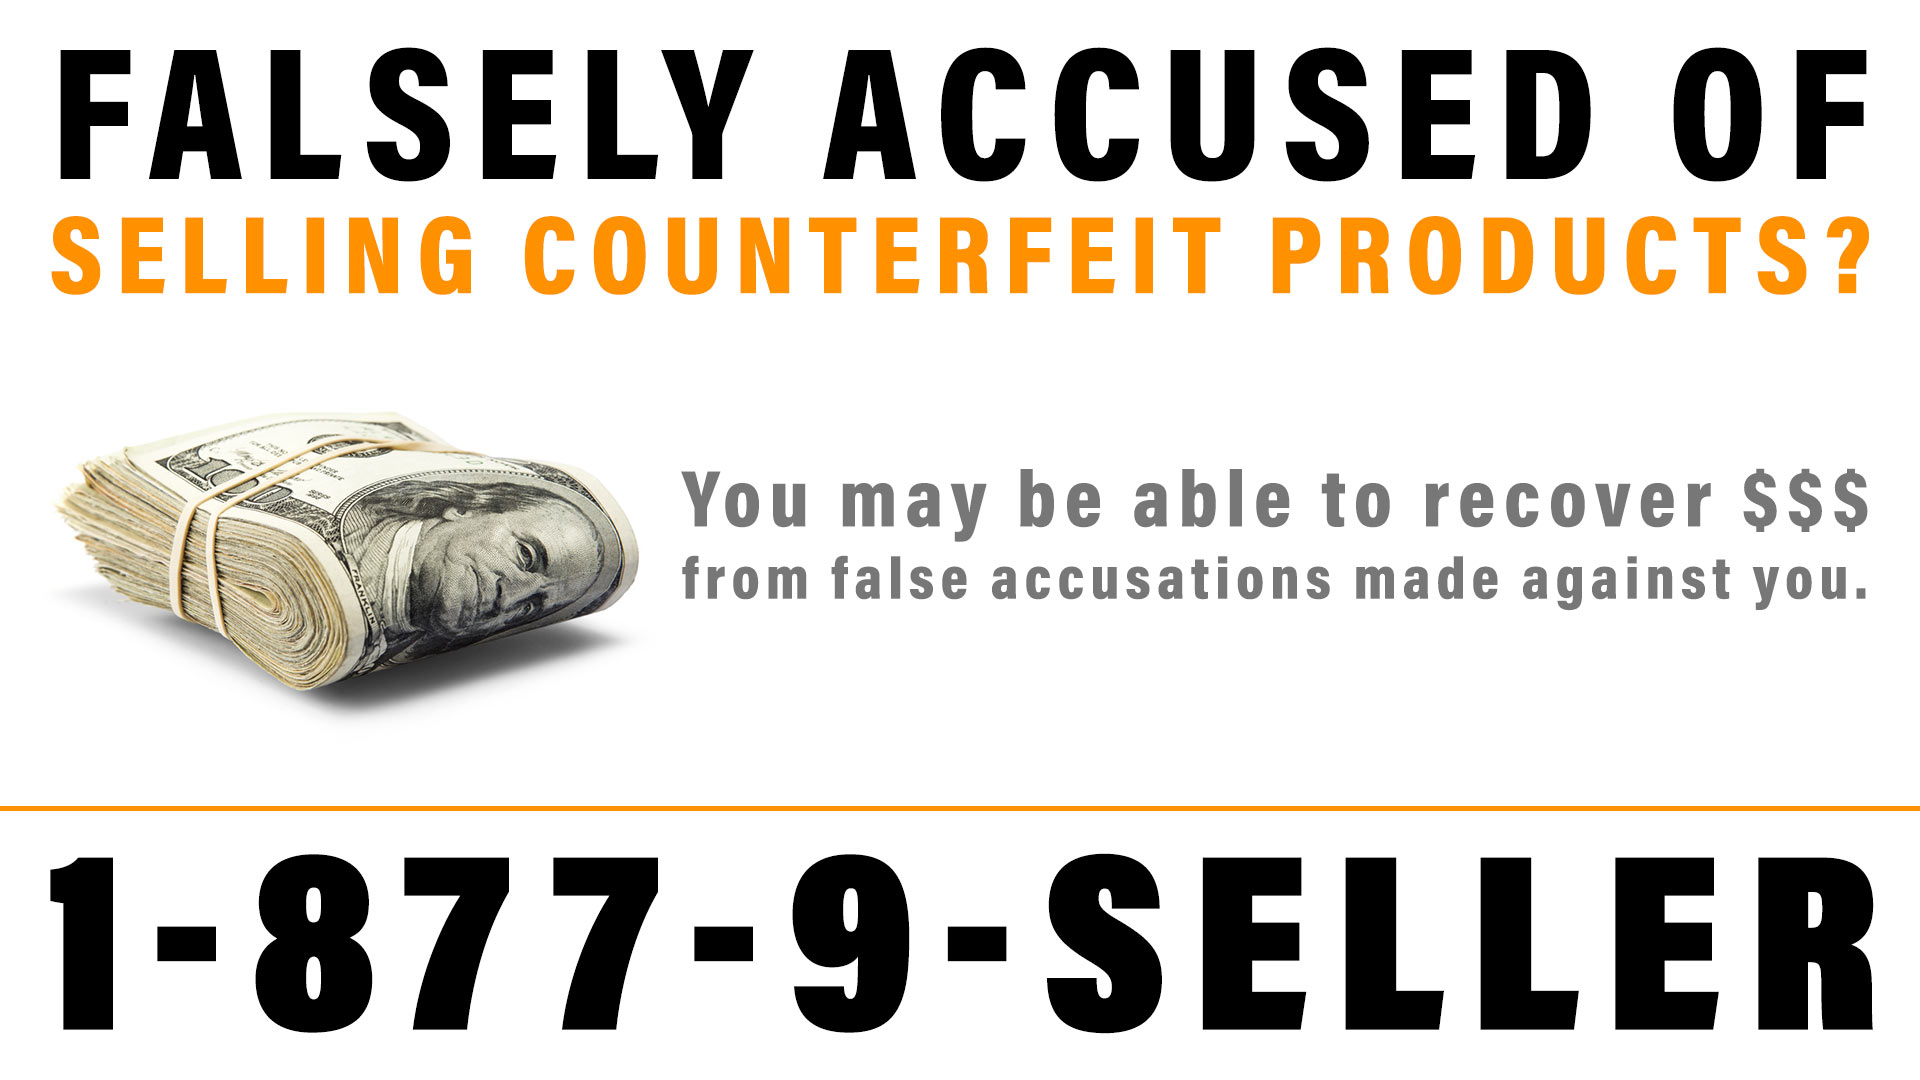 Recover Money from False Accusations of Counterfeit Sales